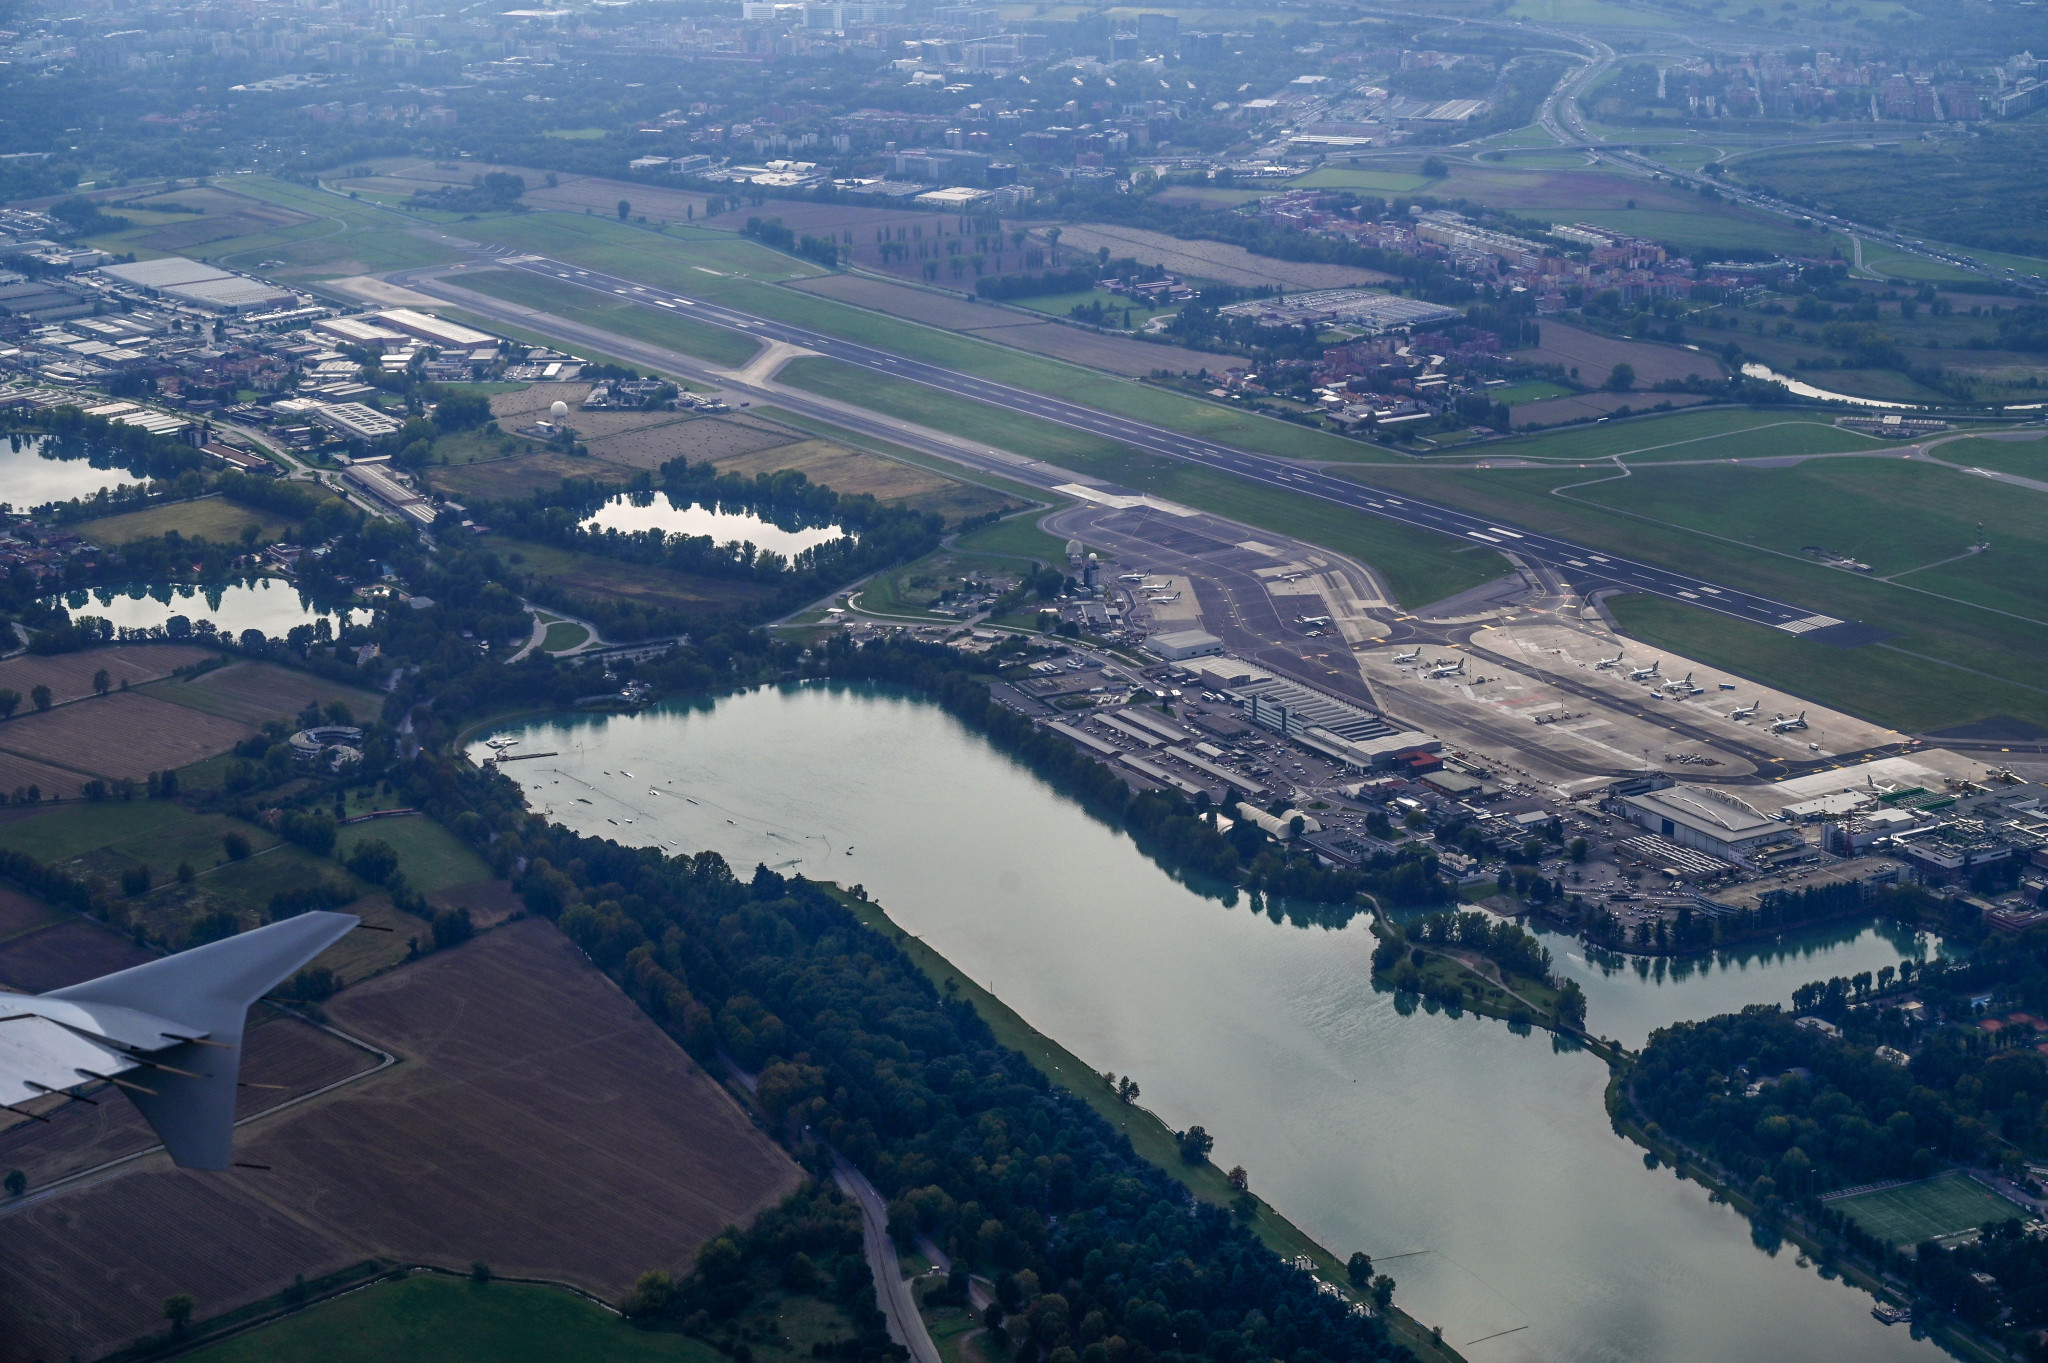 Agreement signed to explore developing vertiport network in time for Milan Cortina 2026